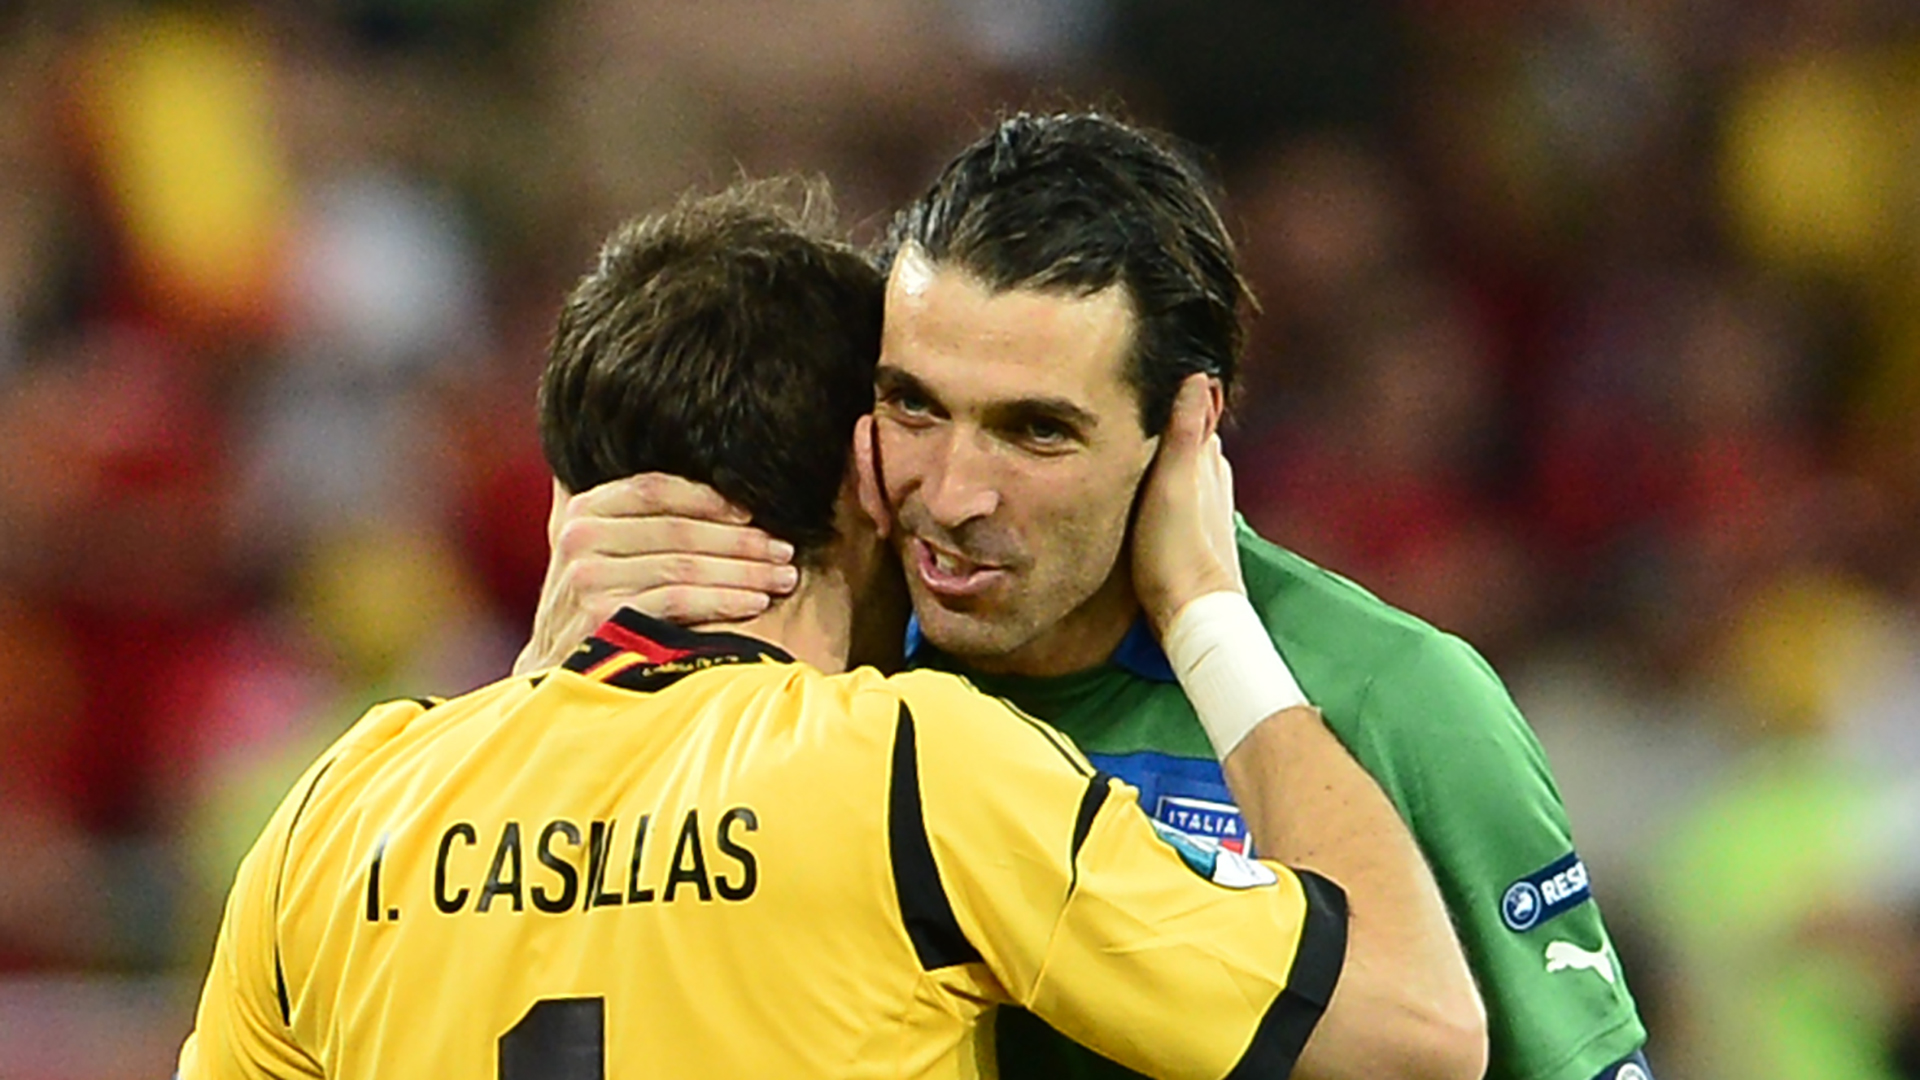 Gianluigi Buffon Iker Casillas